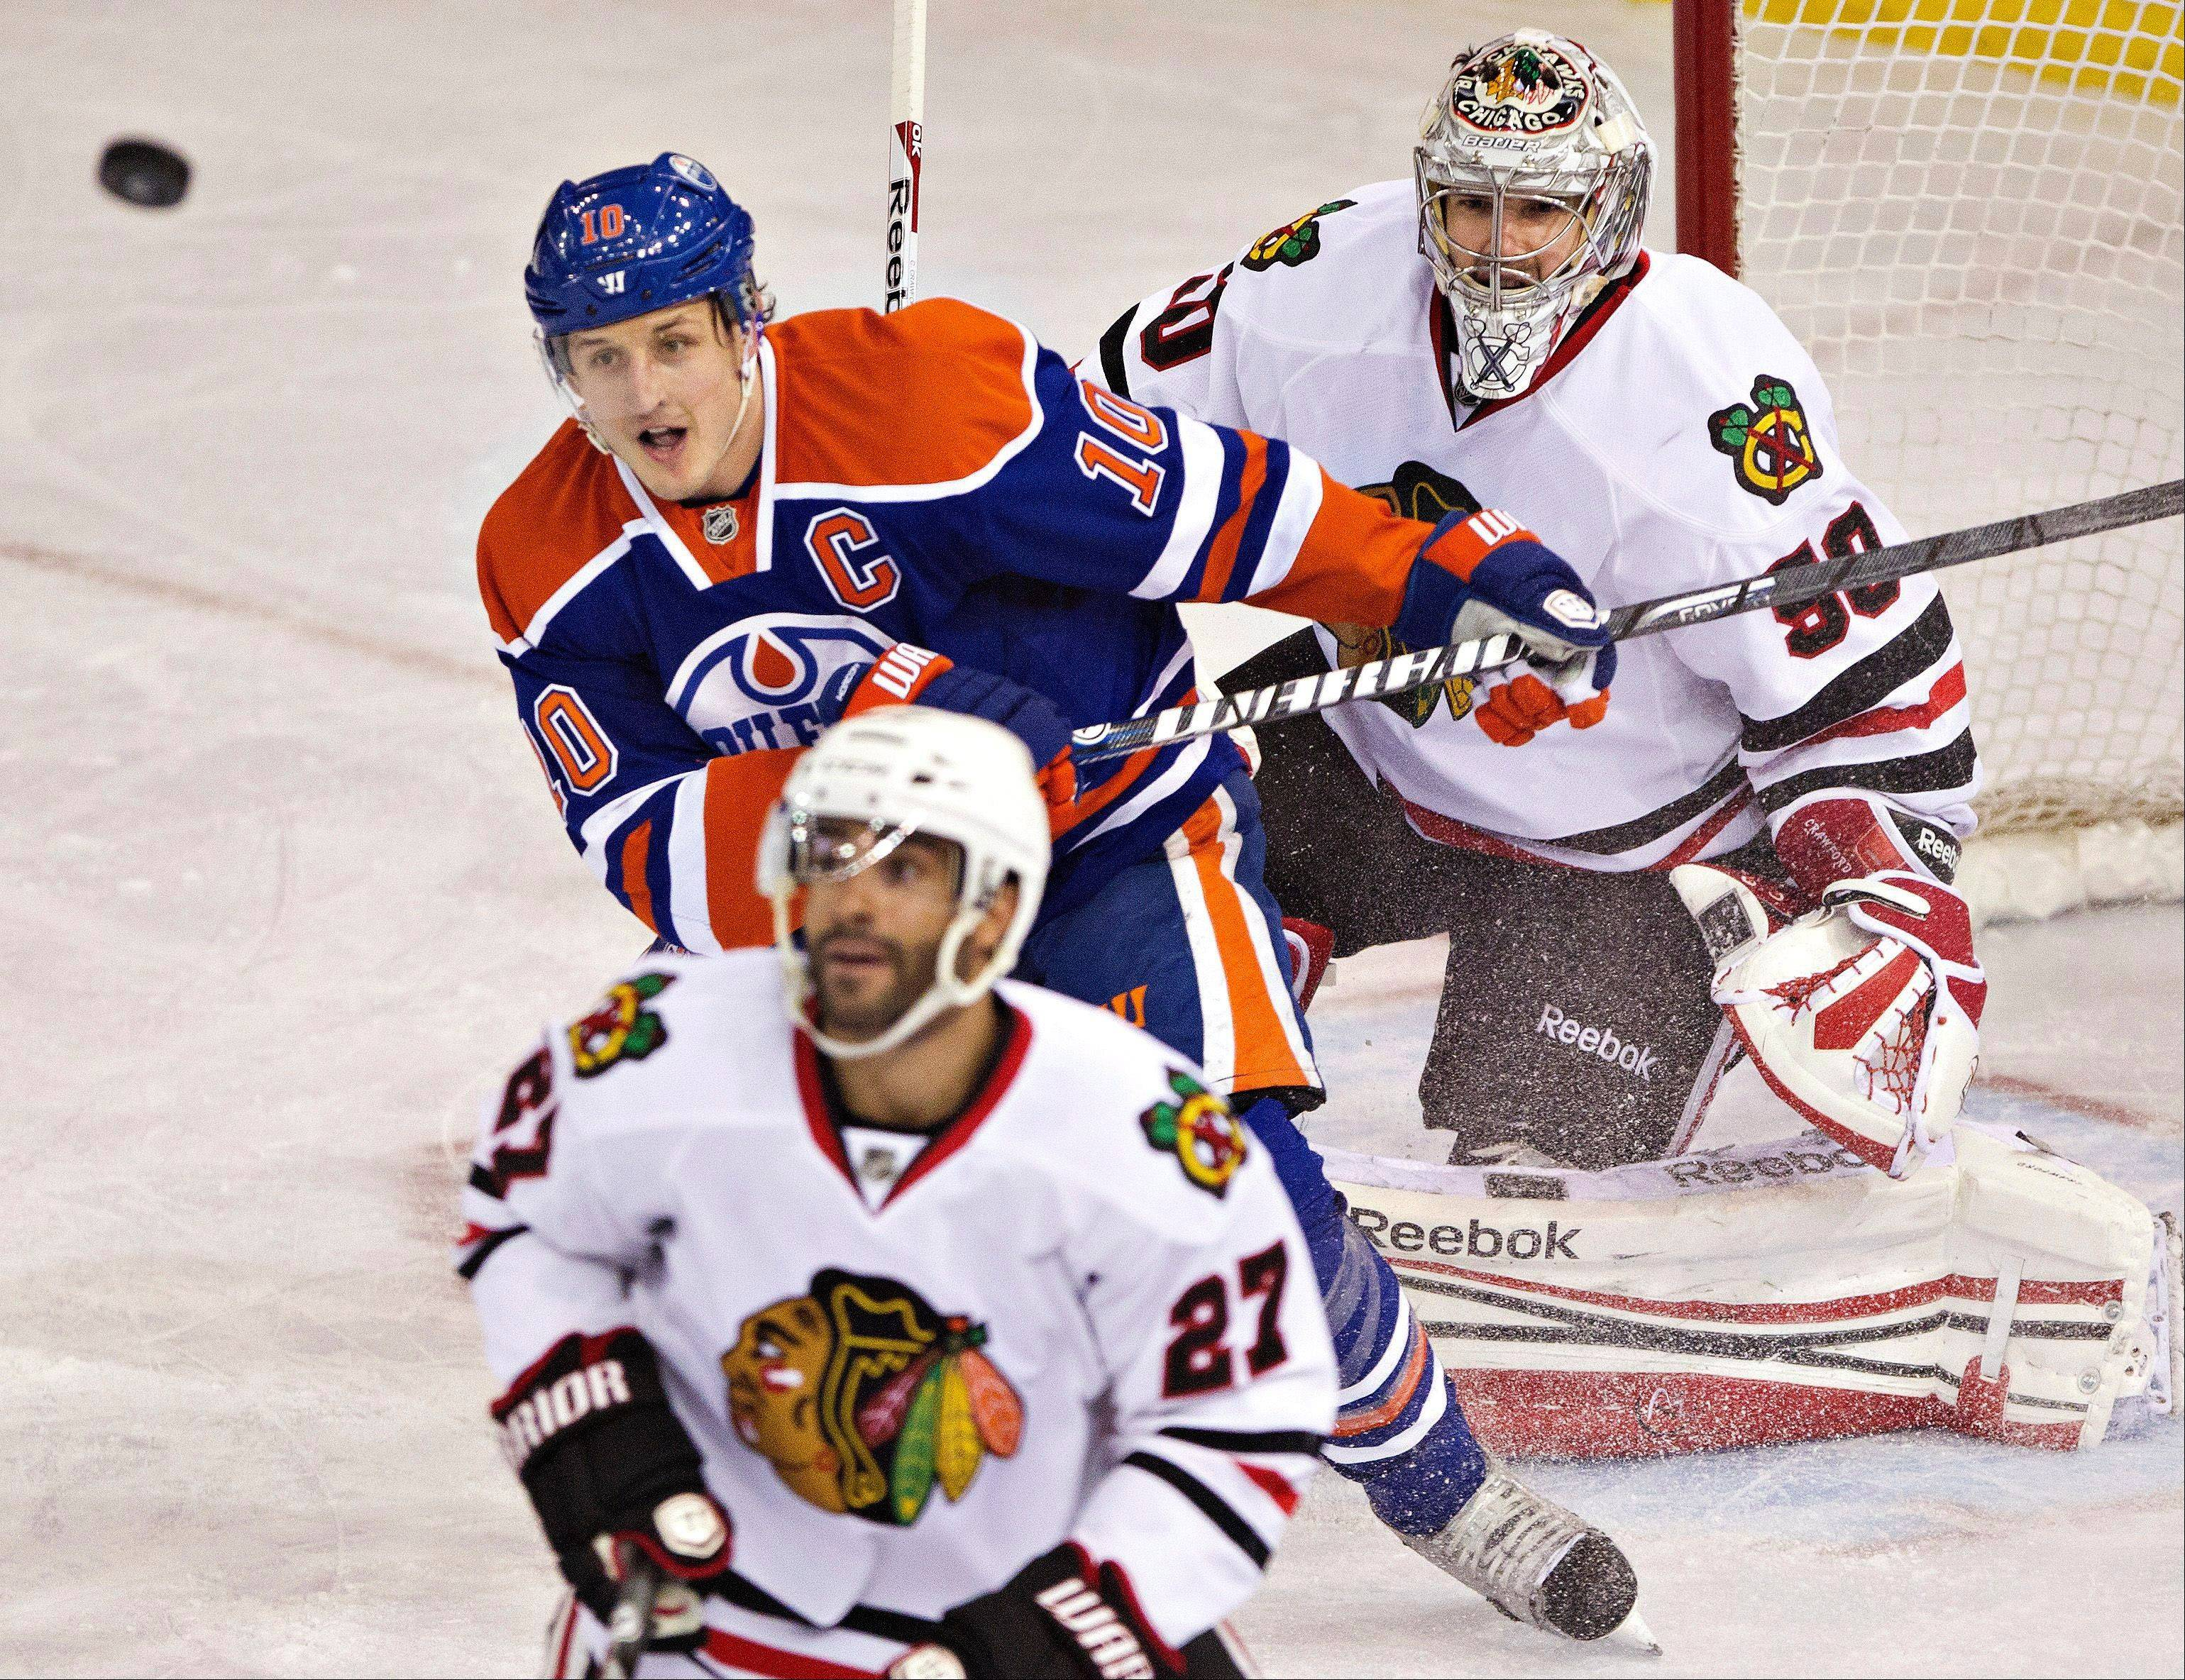 Blackhawks goalie Corey Crawford, top, Edmonton Oilers' Shawn Horcoff (10) and Blackhawks' Johnny Oduya (27) look for the rebound Wednesday night in Edmonton.